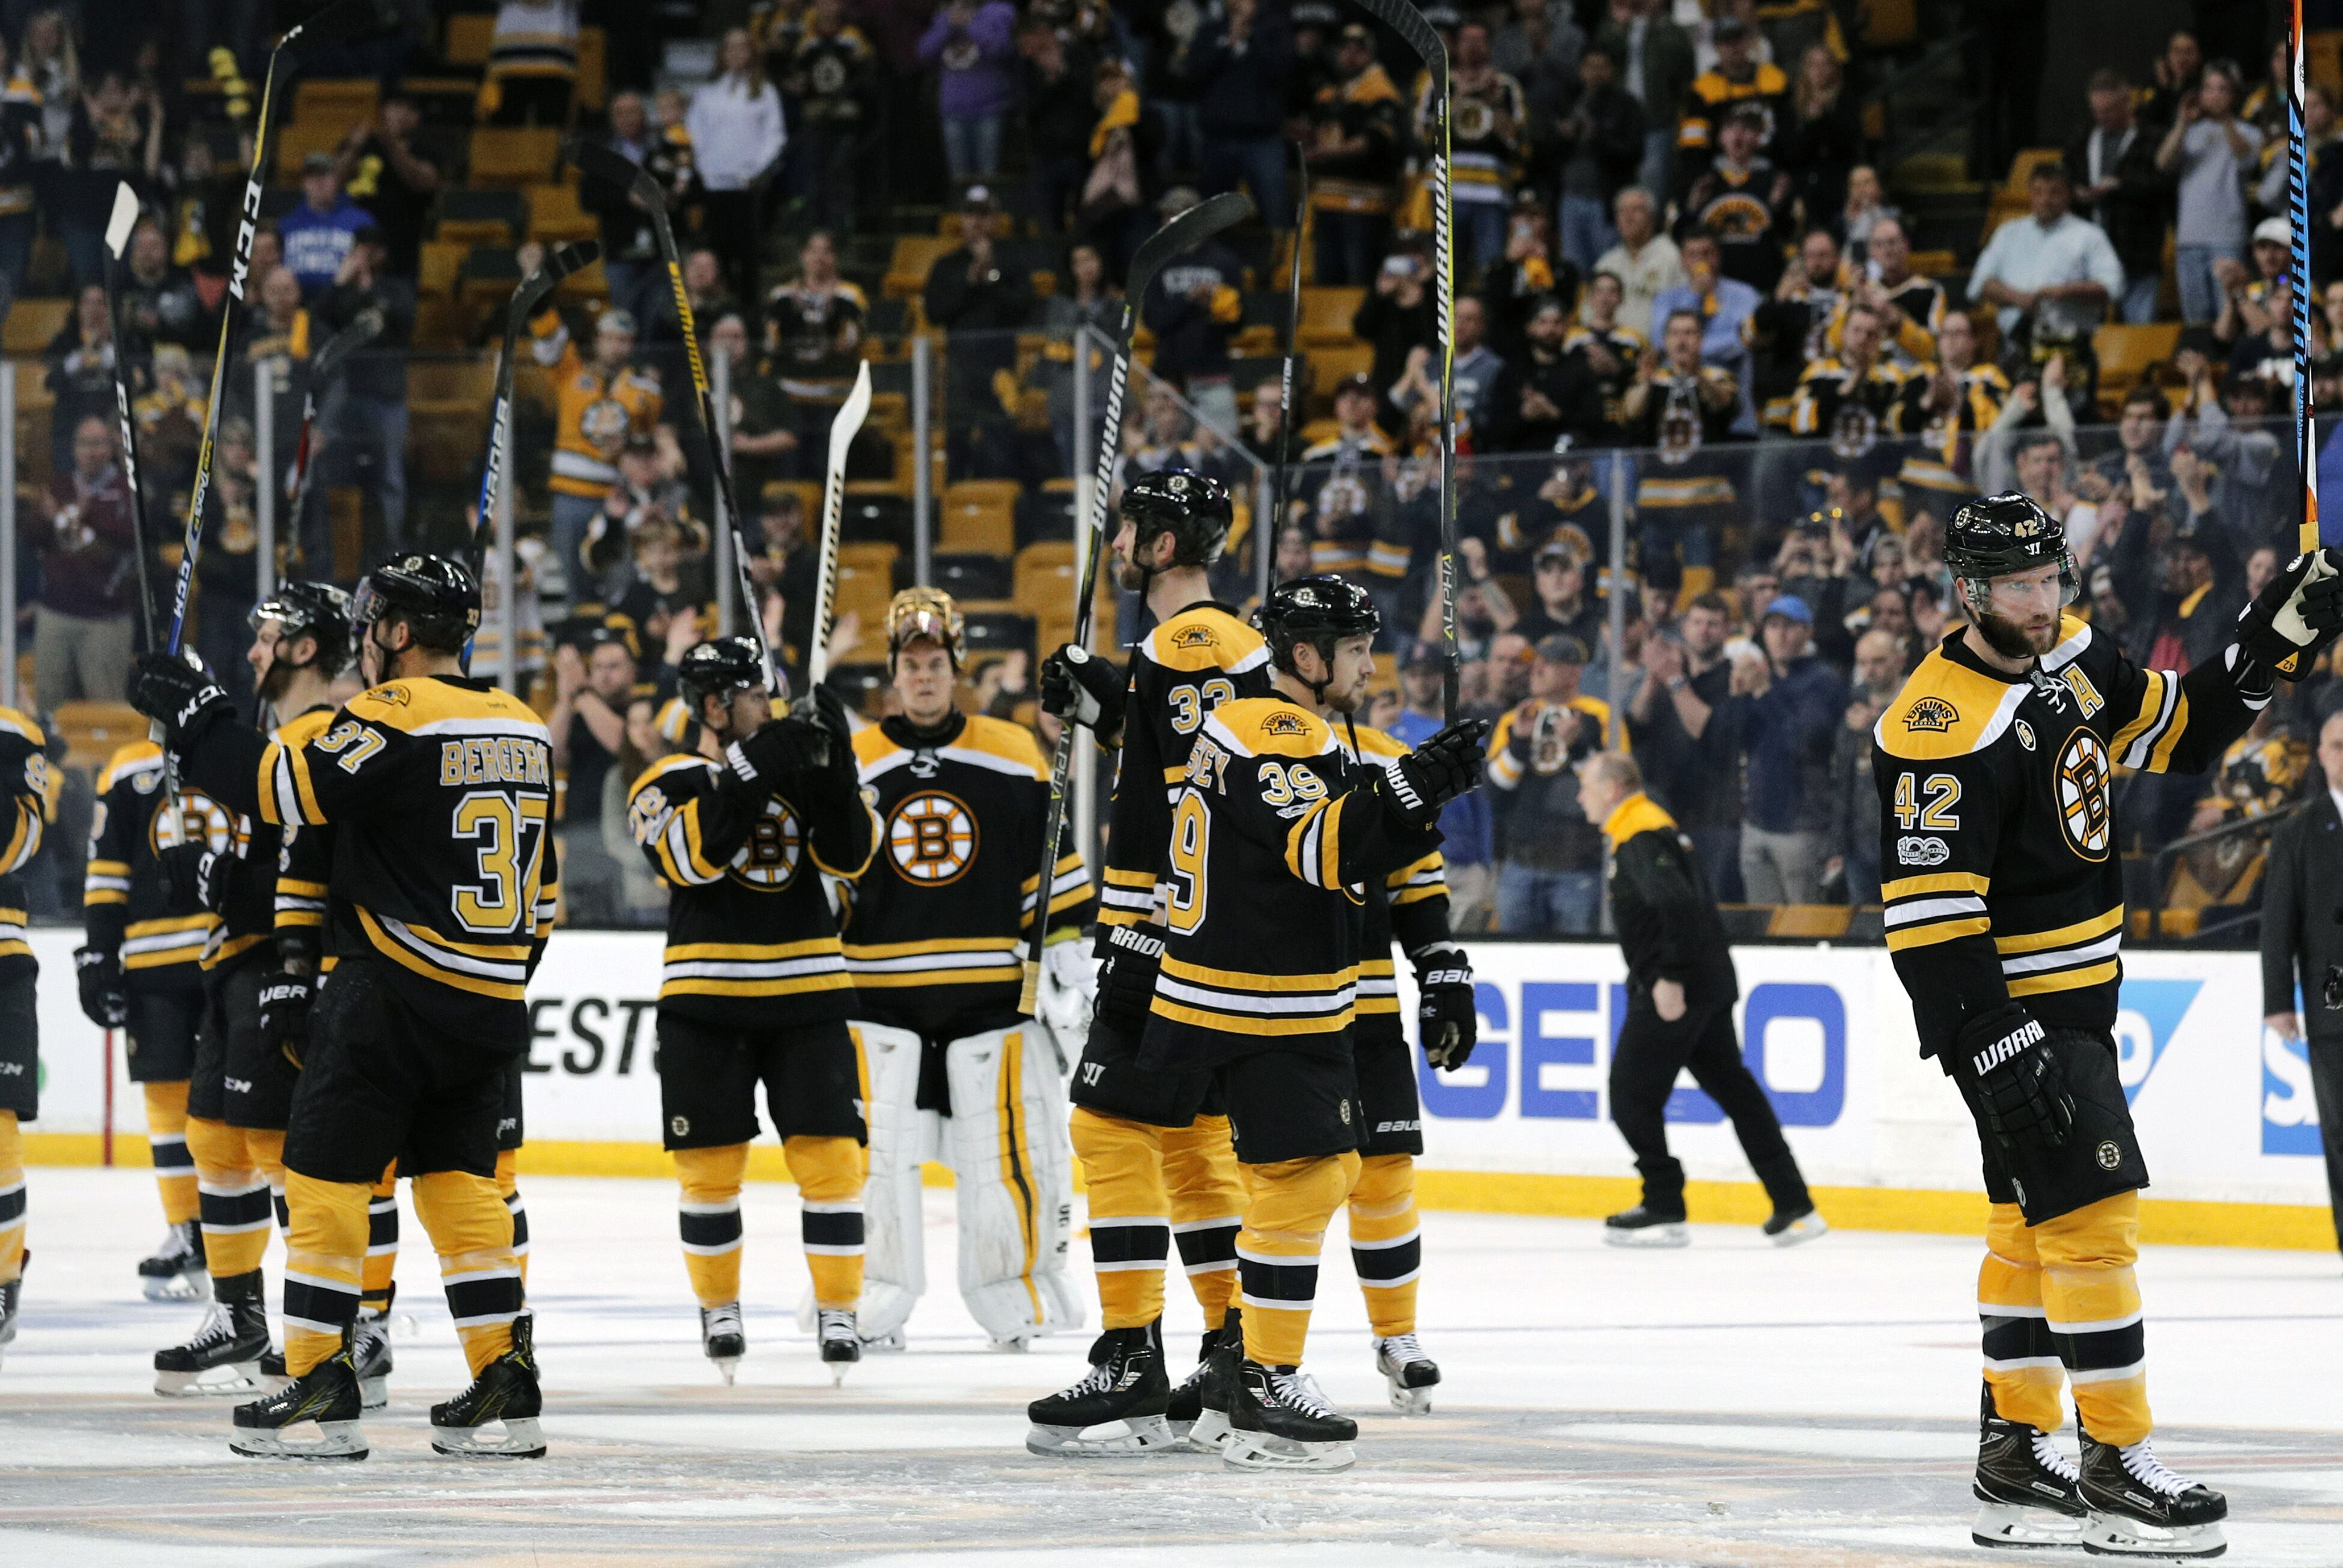 Boston Bruins: Boston Bruins And Their Fans Belong In Fandom250